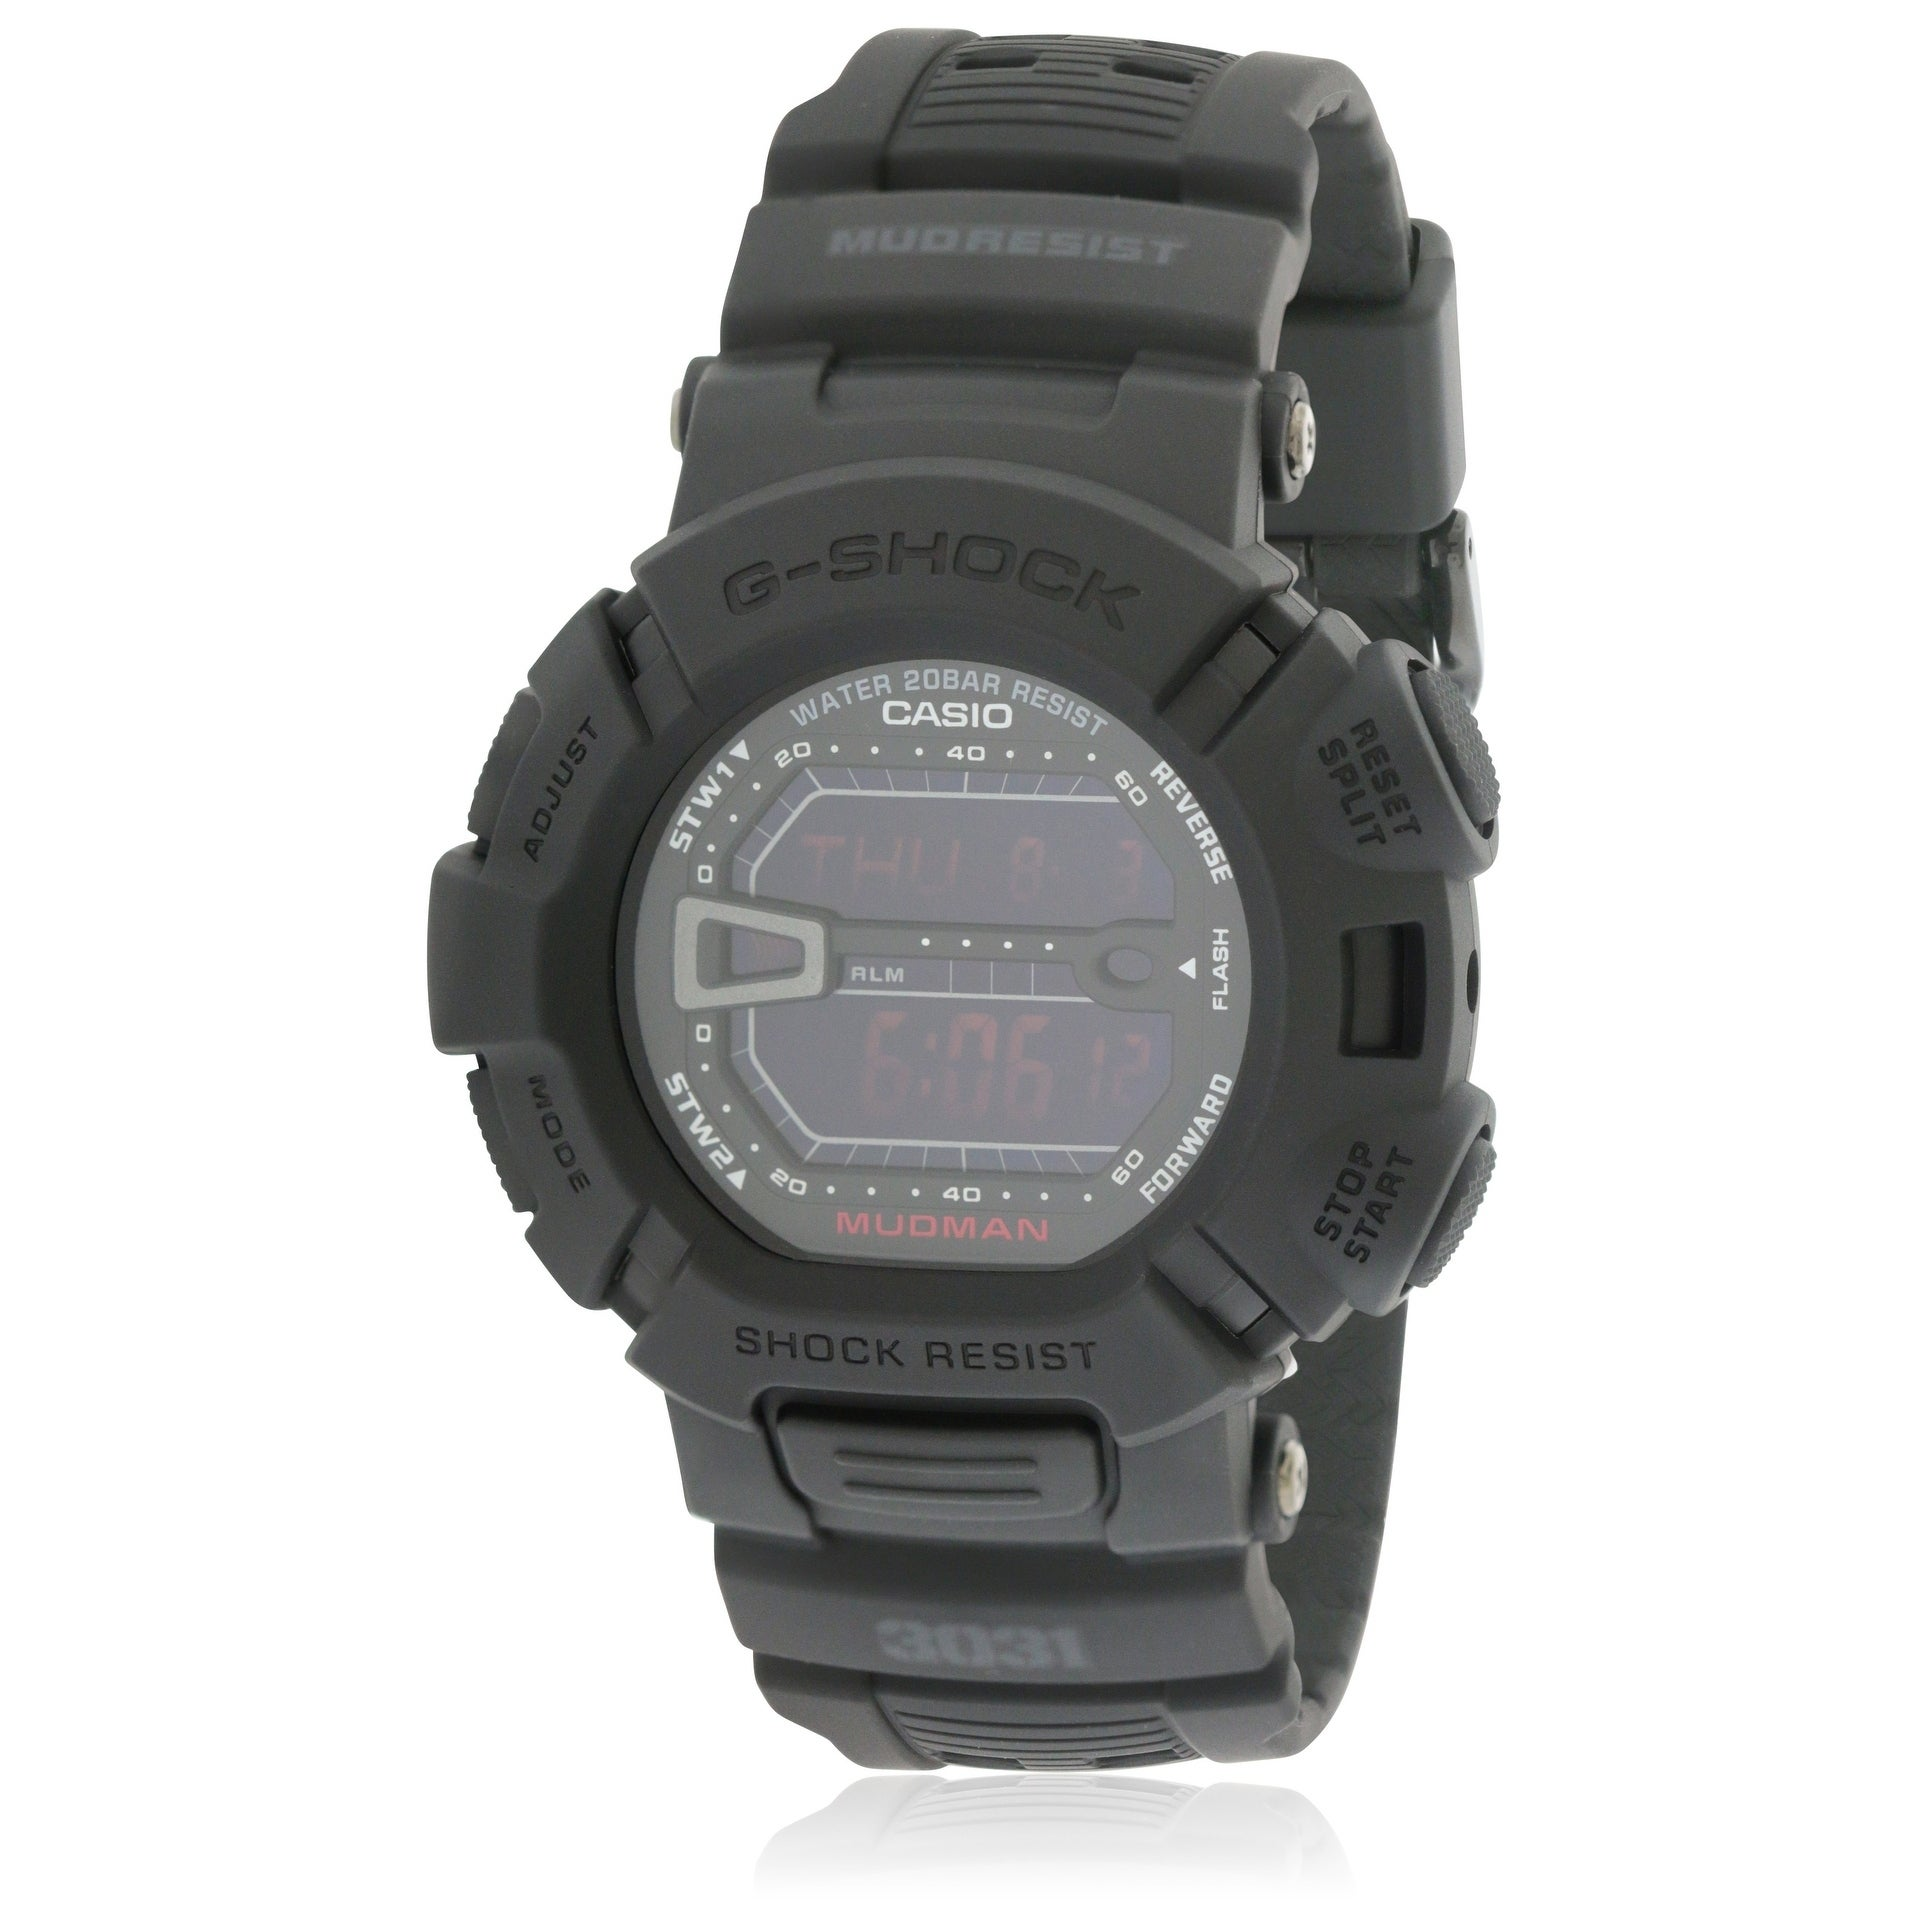 c0ebe4ddab8 Shop Casio Men s G-Force Military Concept Black Digital Watch G9000MS-1CR -  Free Shipping Today - Overstock - 17238034